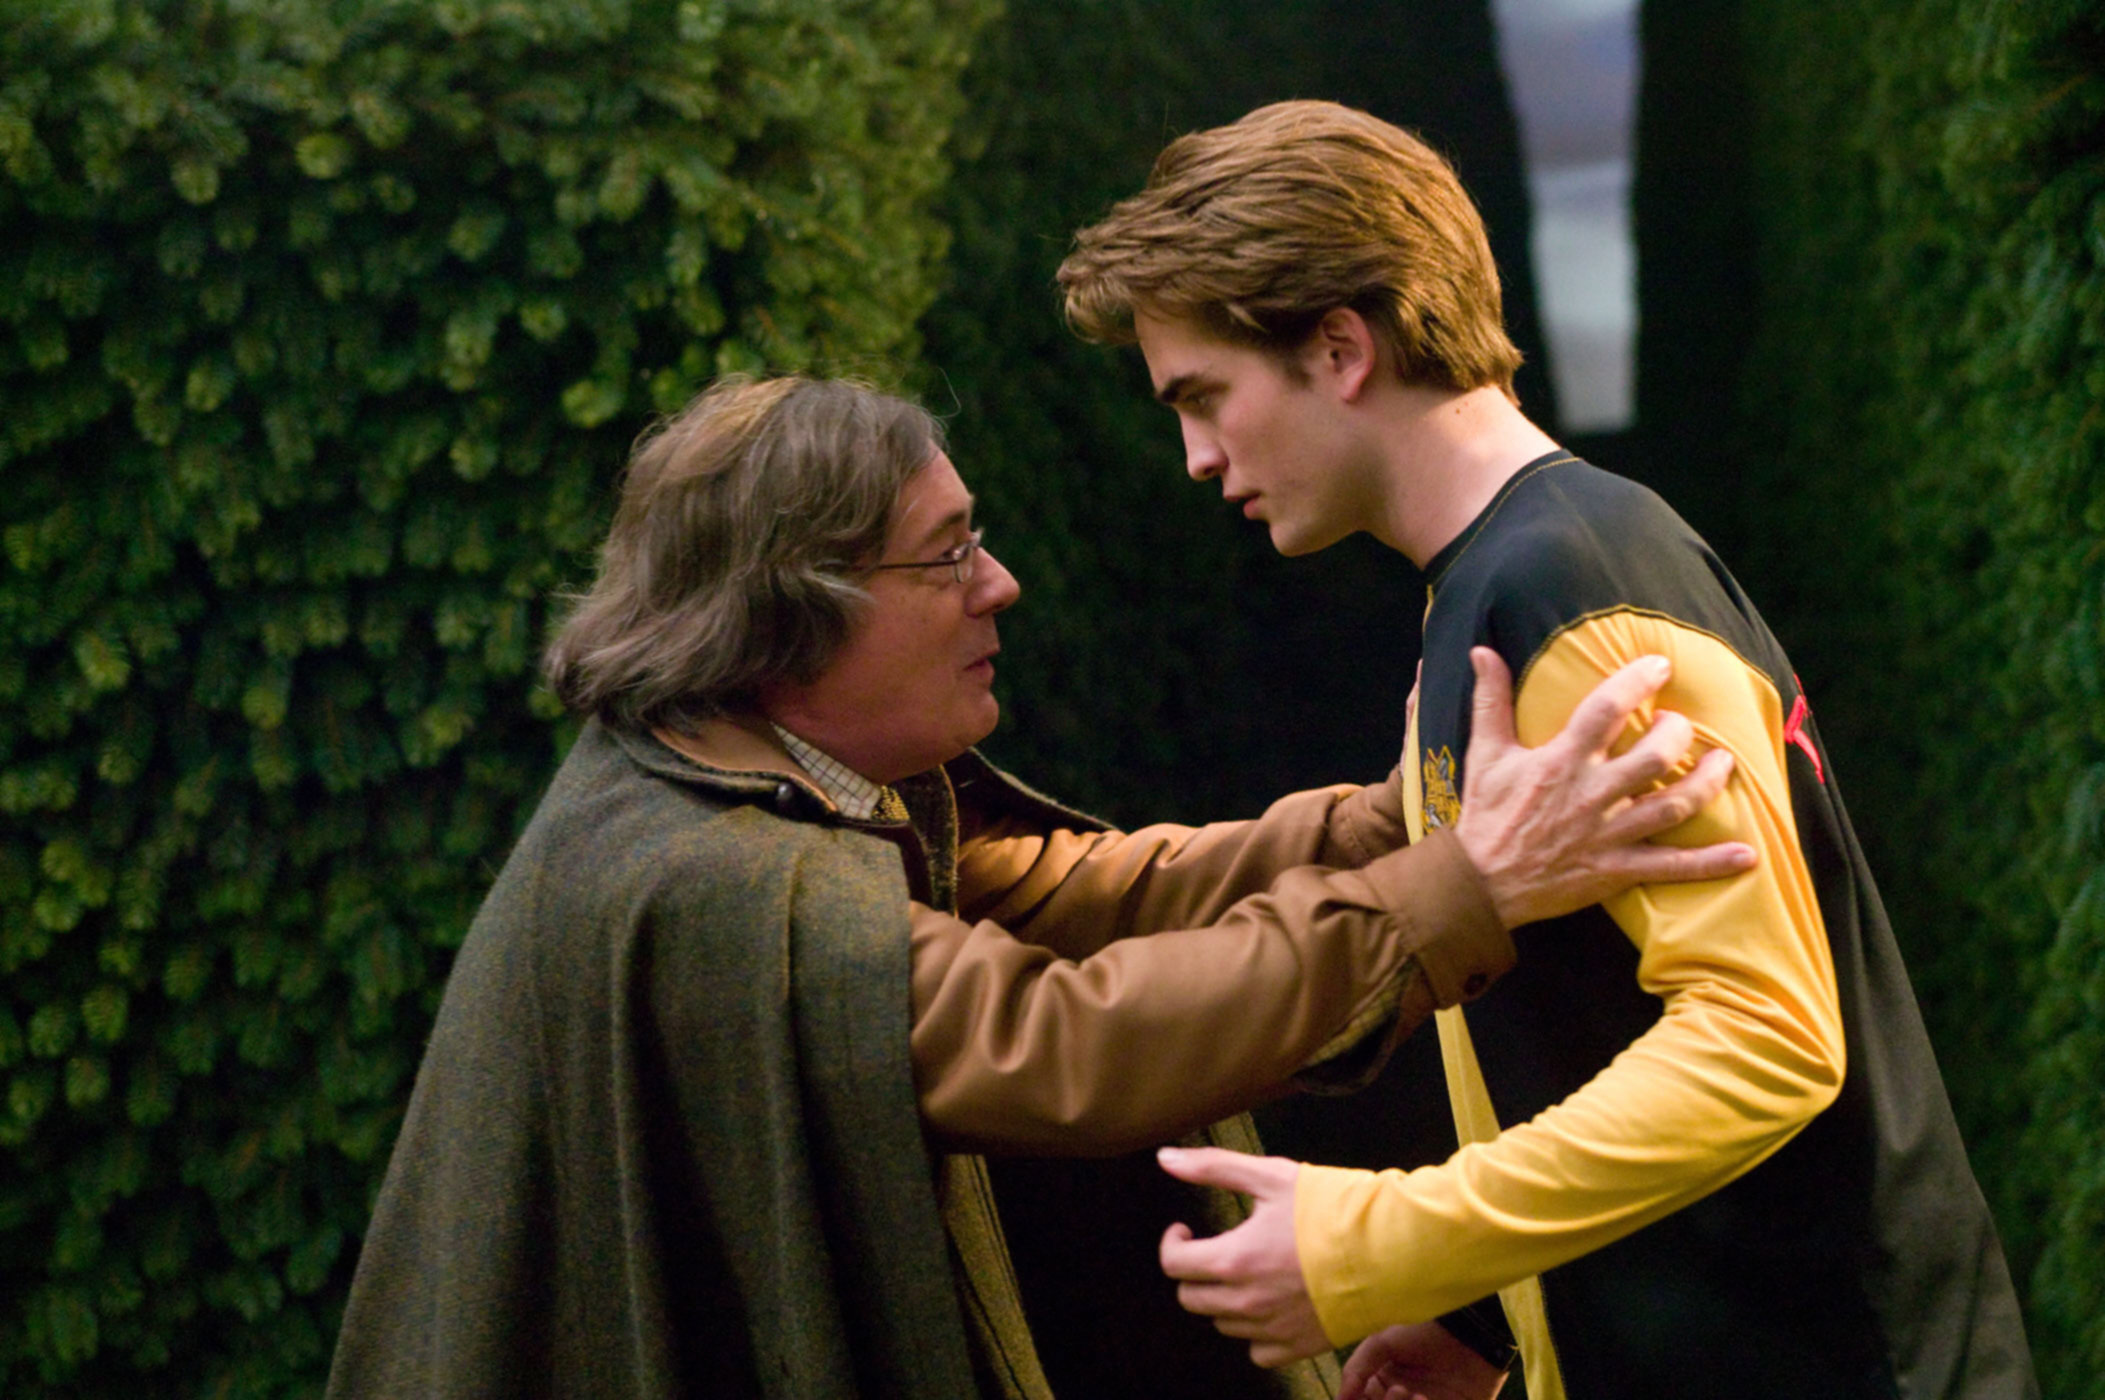 http://images2.wikia.nocookie.net/__cb20070906142428/harrypotter/images/2/24/AmosCedric.jpg